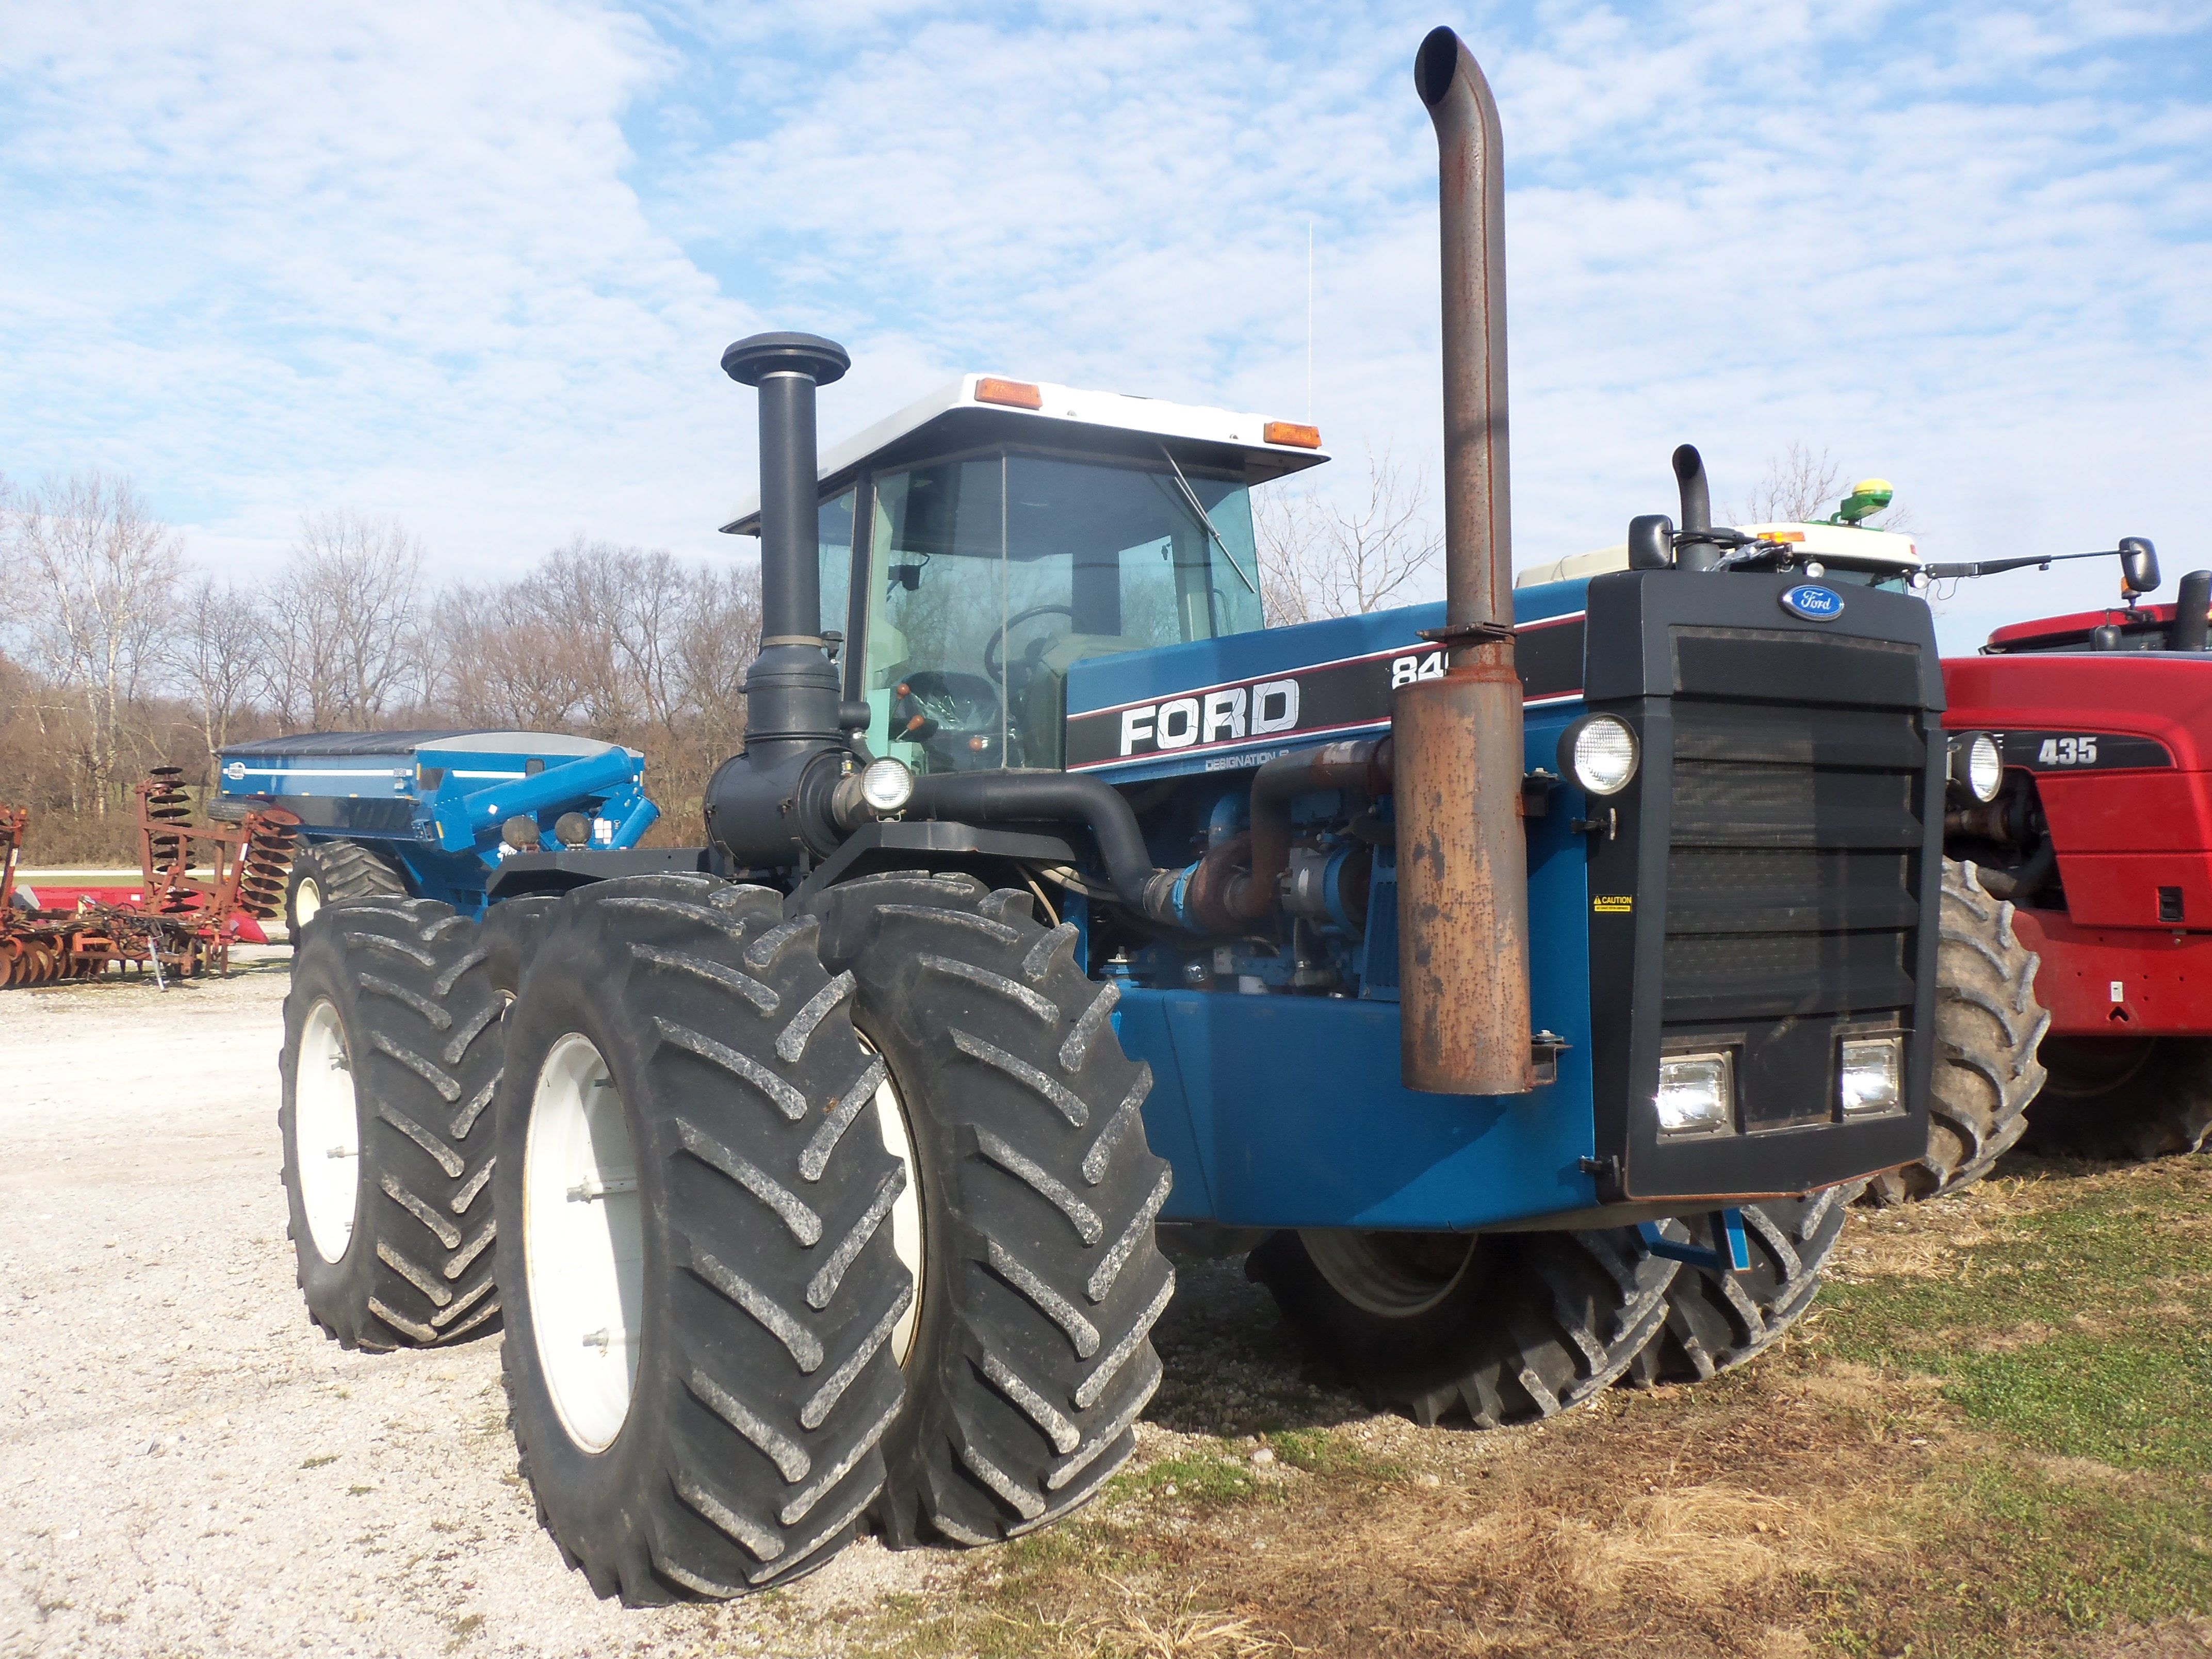 Ford 9600 Ford Tractors New Holland Tractor Vintage Tractors